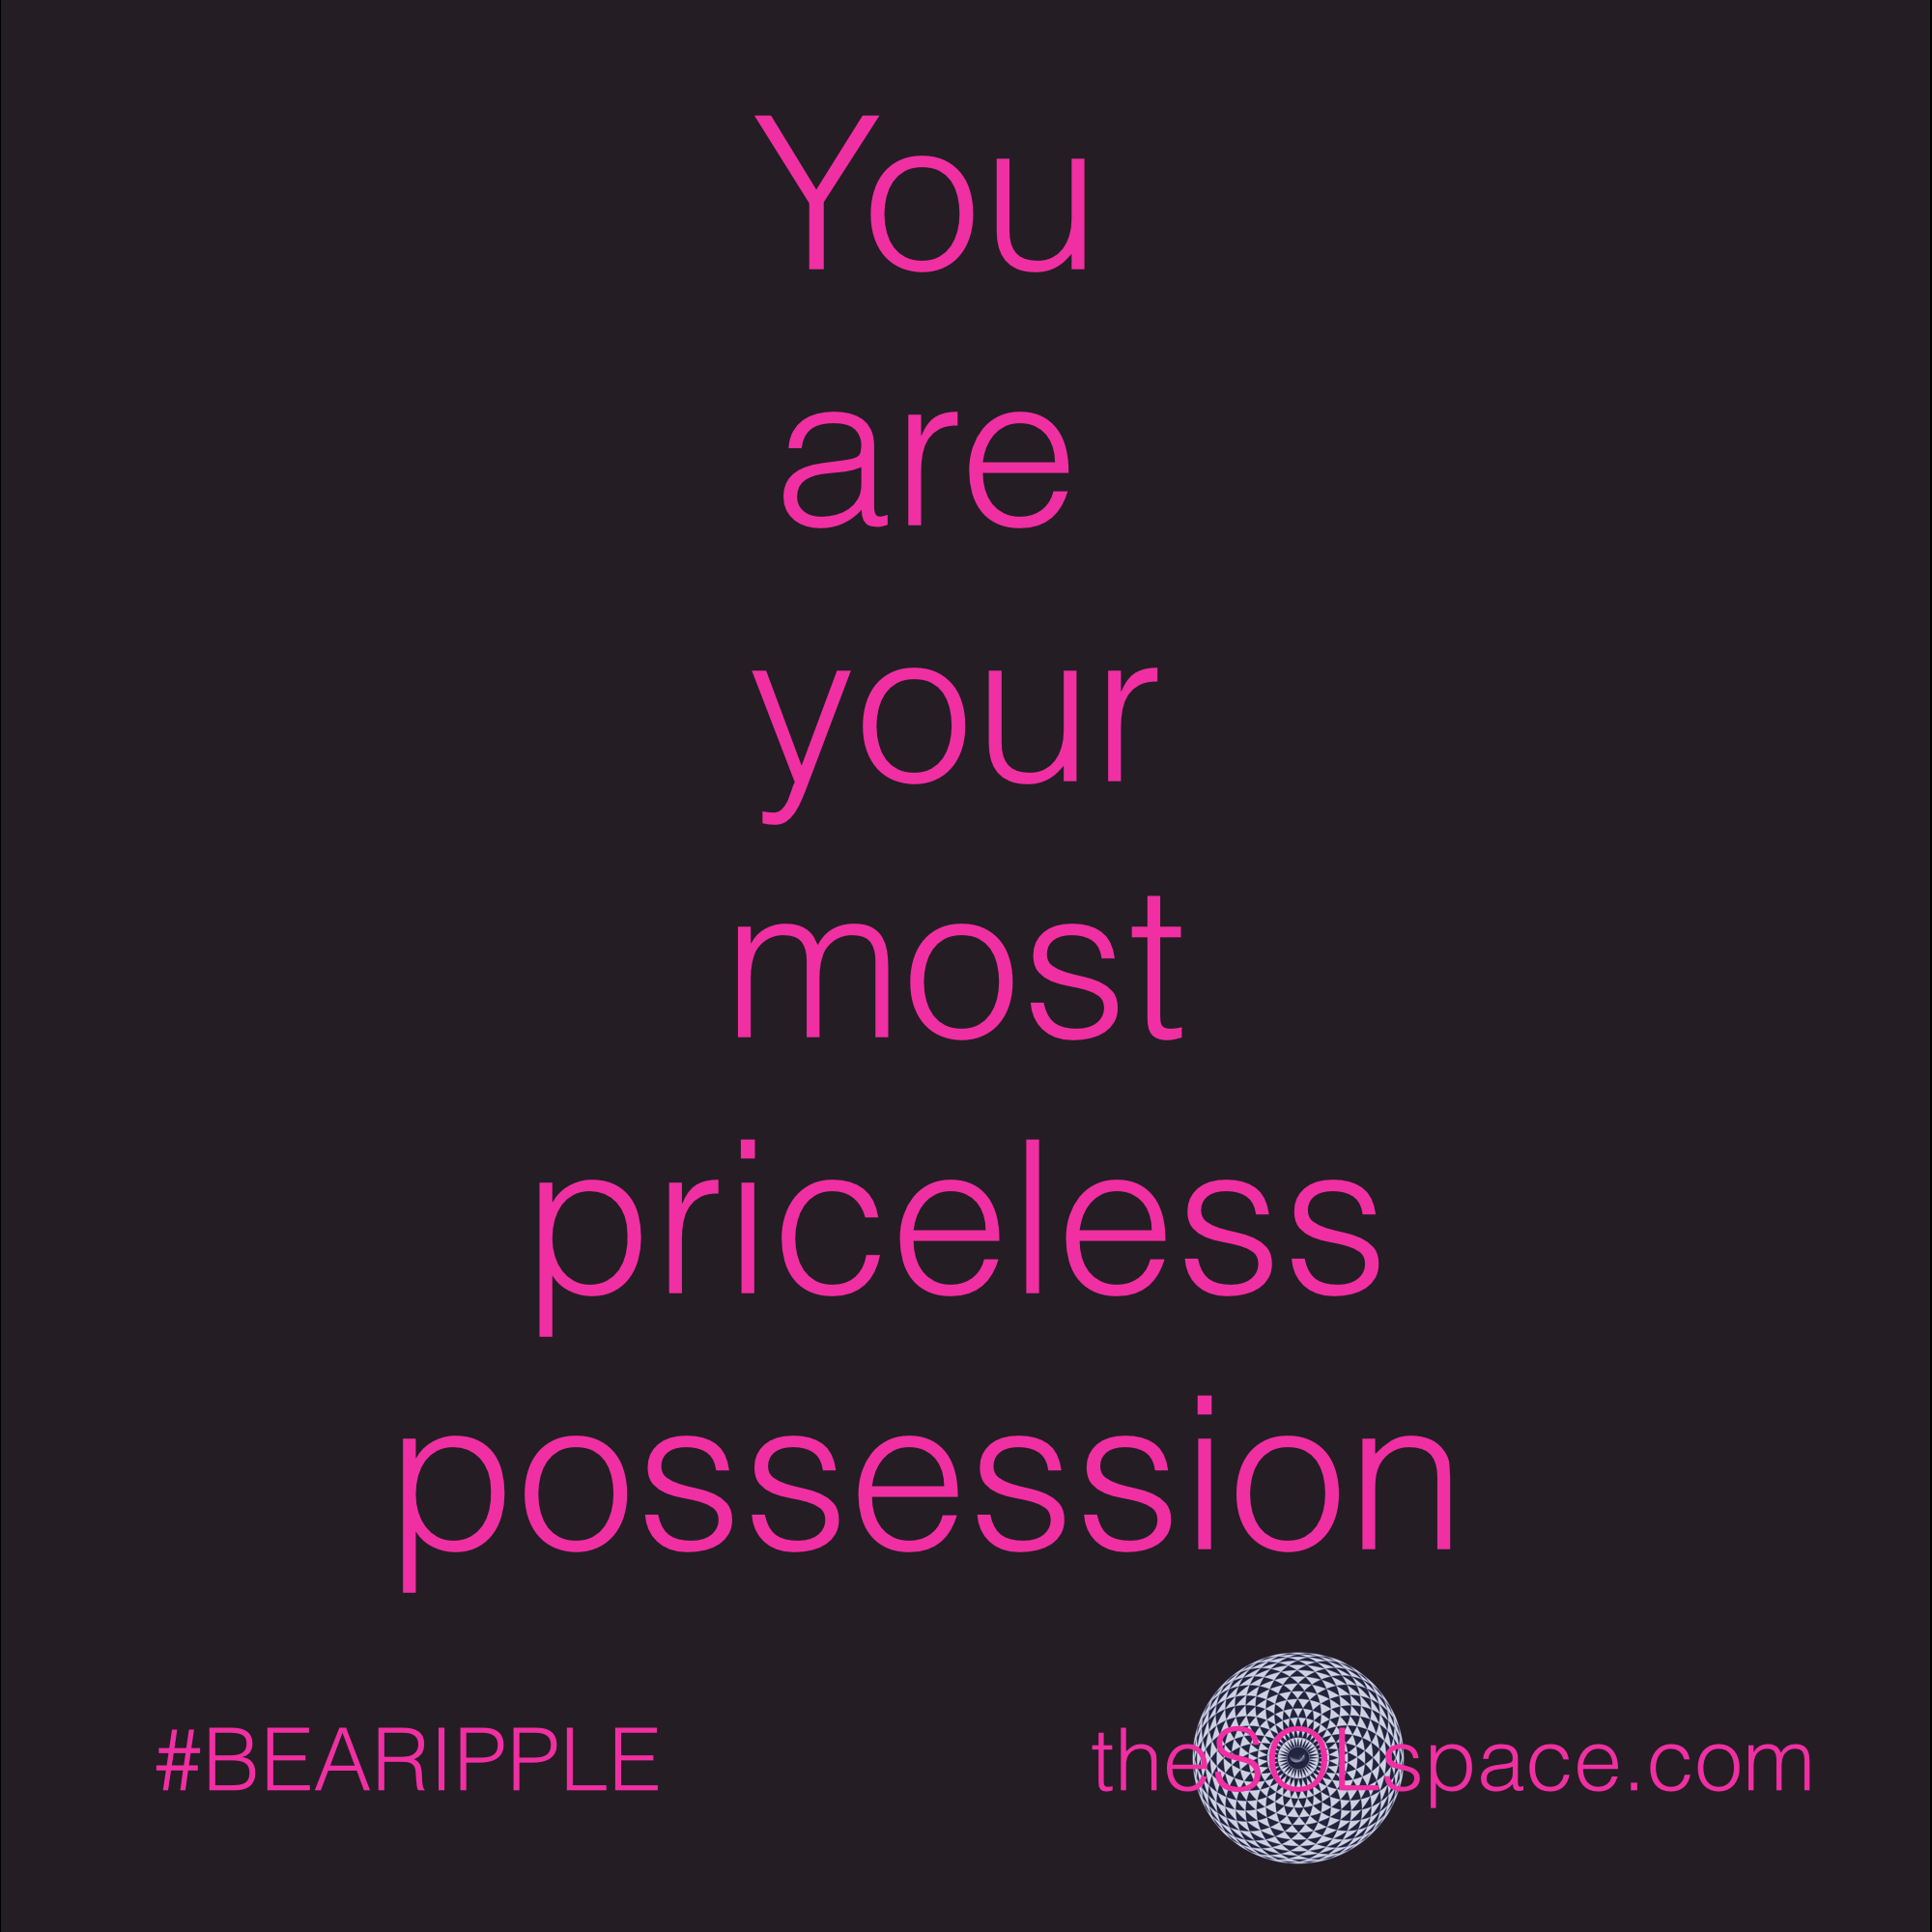 #BeARipple..You are your most priceless possession @theSOLspace